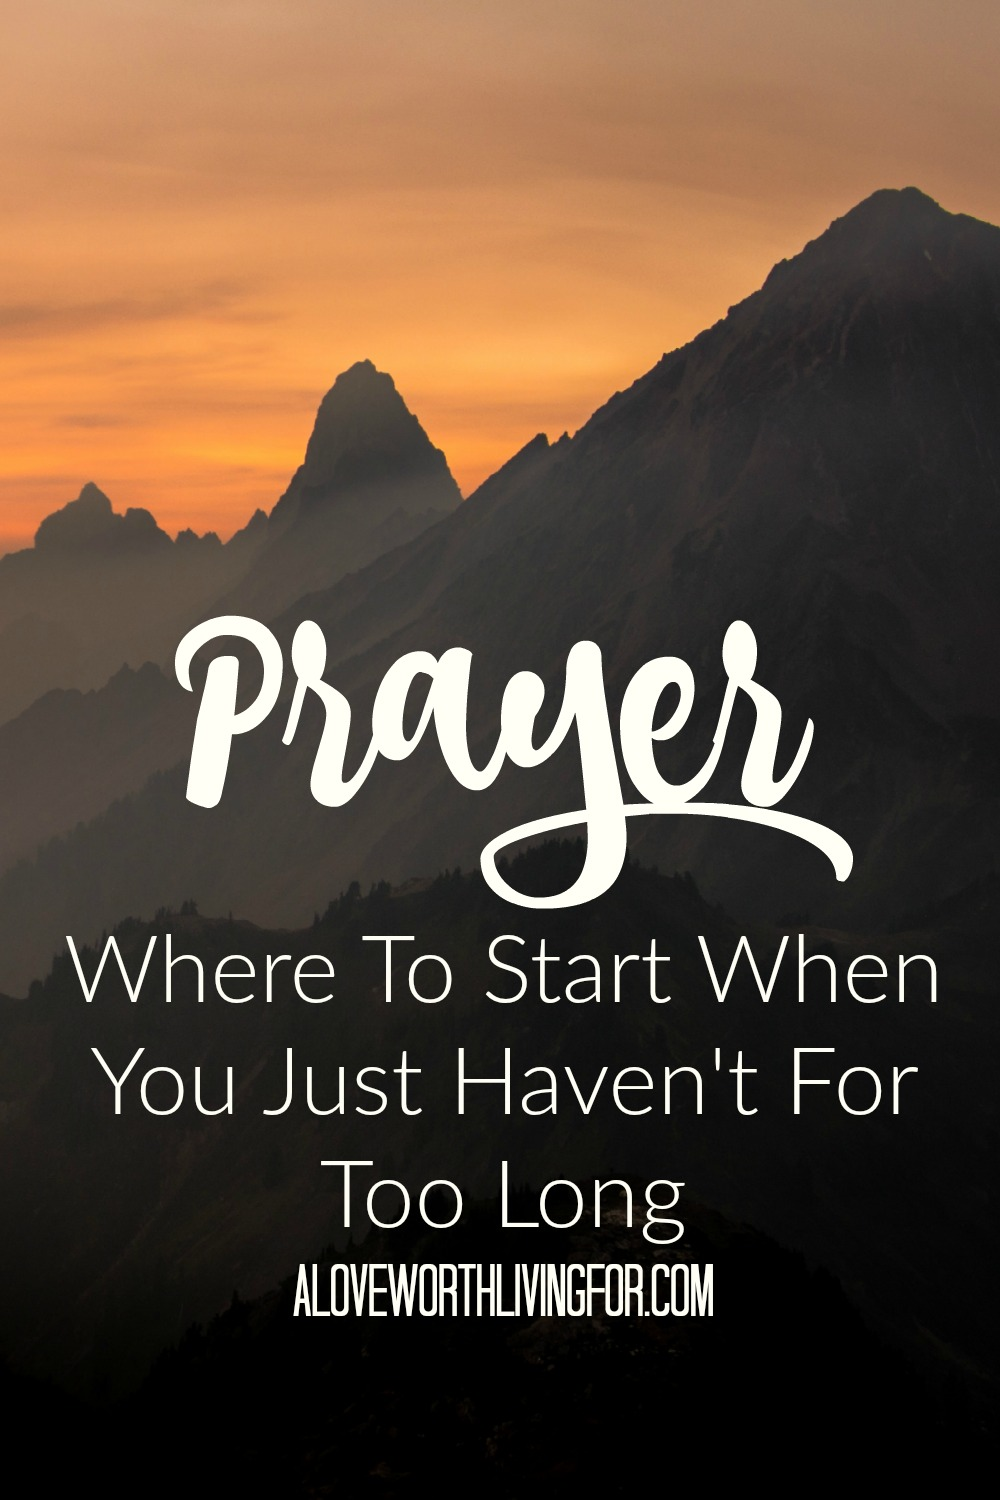 We've all been there. Life gets crazy and we all kinds of distracted and next thing you know, you don't remember the last time you've prayed. You forgot that Christianity is about relationship with God. This is to encourage you to have a deep and rich prayer life with the God that loves you and cares about your life.